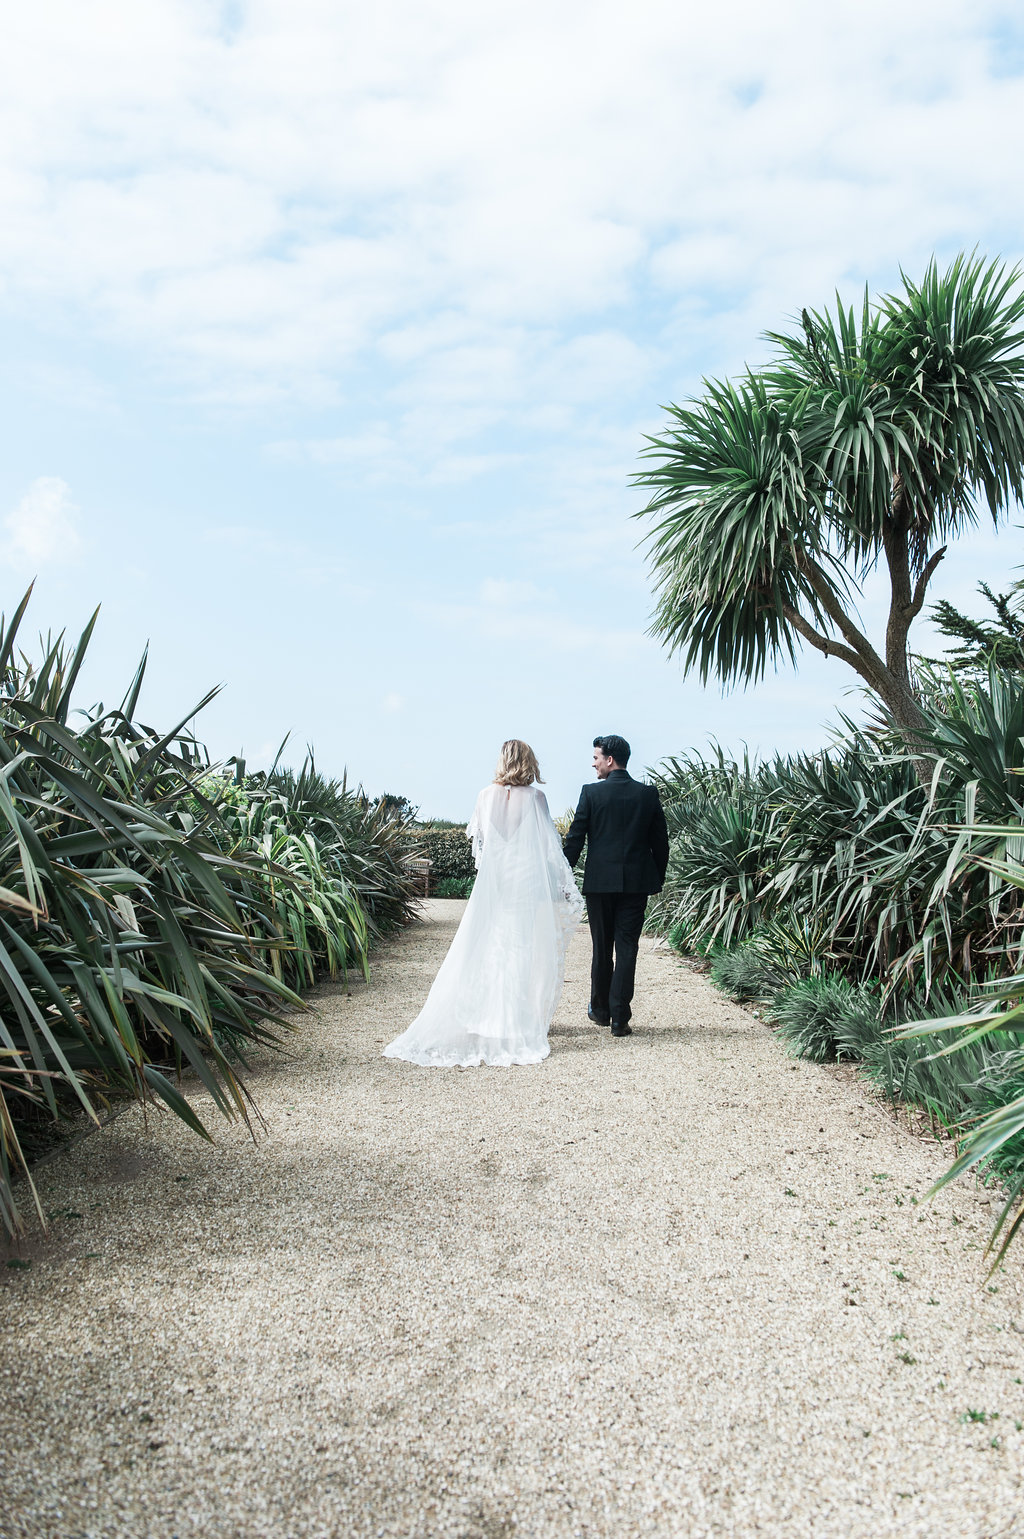 Bride and groom walk on a path surrounded by tropical plants and trees